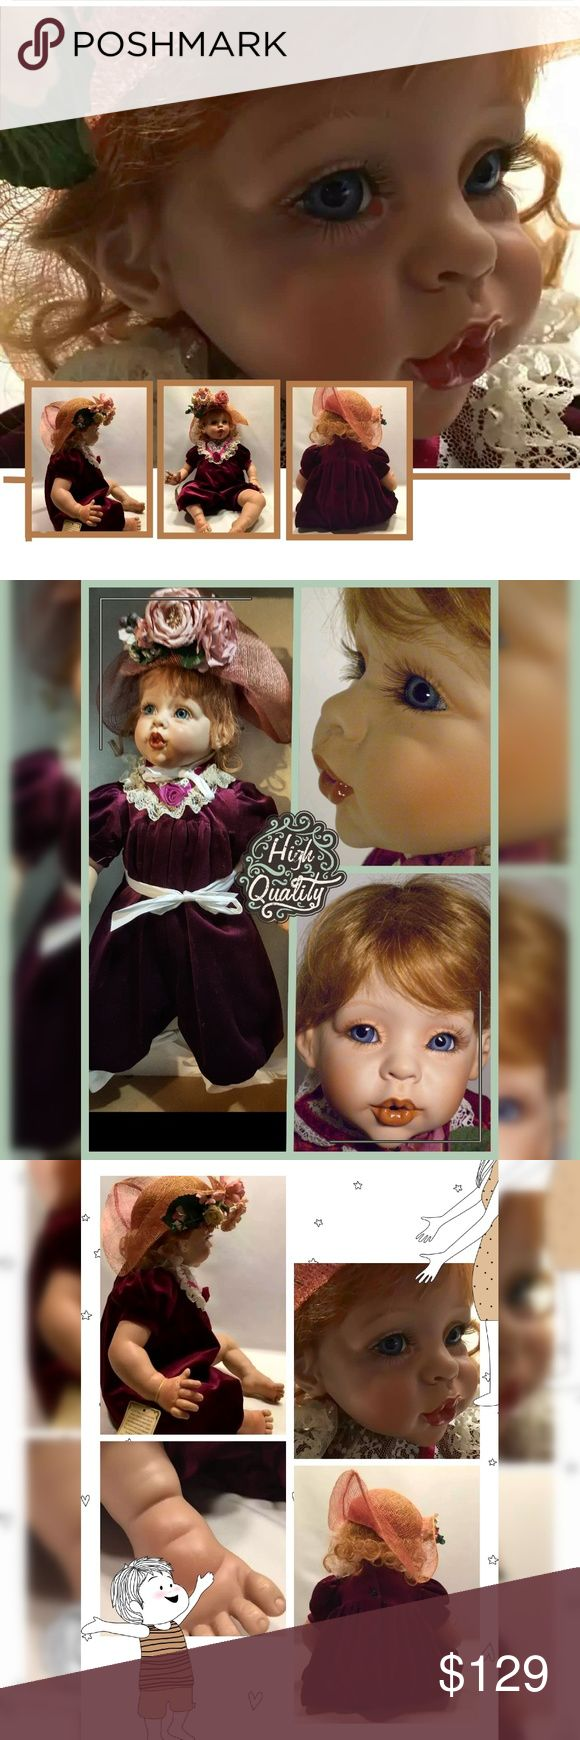 """Fayzah Spanos Precious Heirlooms Collections Doll This Beautiful Doll is called """"KISSES"""". She was created by the gifted doll artisan Fayzah Spanos. This particular design won?a 1994 DOTY Award. She is hand crafted wearing a lovely burgundy romper suit w/lace applique, burgundy ribbon short sleeves & a unique flower accented sun hat. She comes w/COA, wrist tag & original box. She is #1976 of 2500 worldwide..a limited edition beauty. She is about 26"""" long.?Comes As seen in pictures. Box has…"""